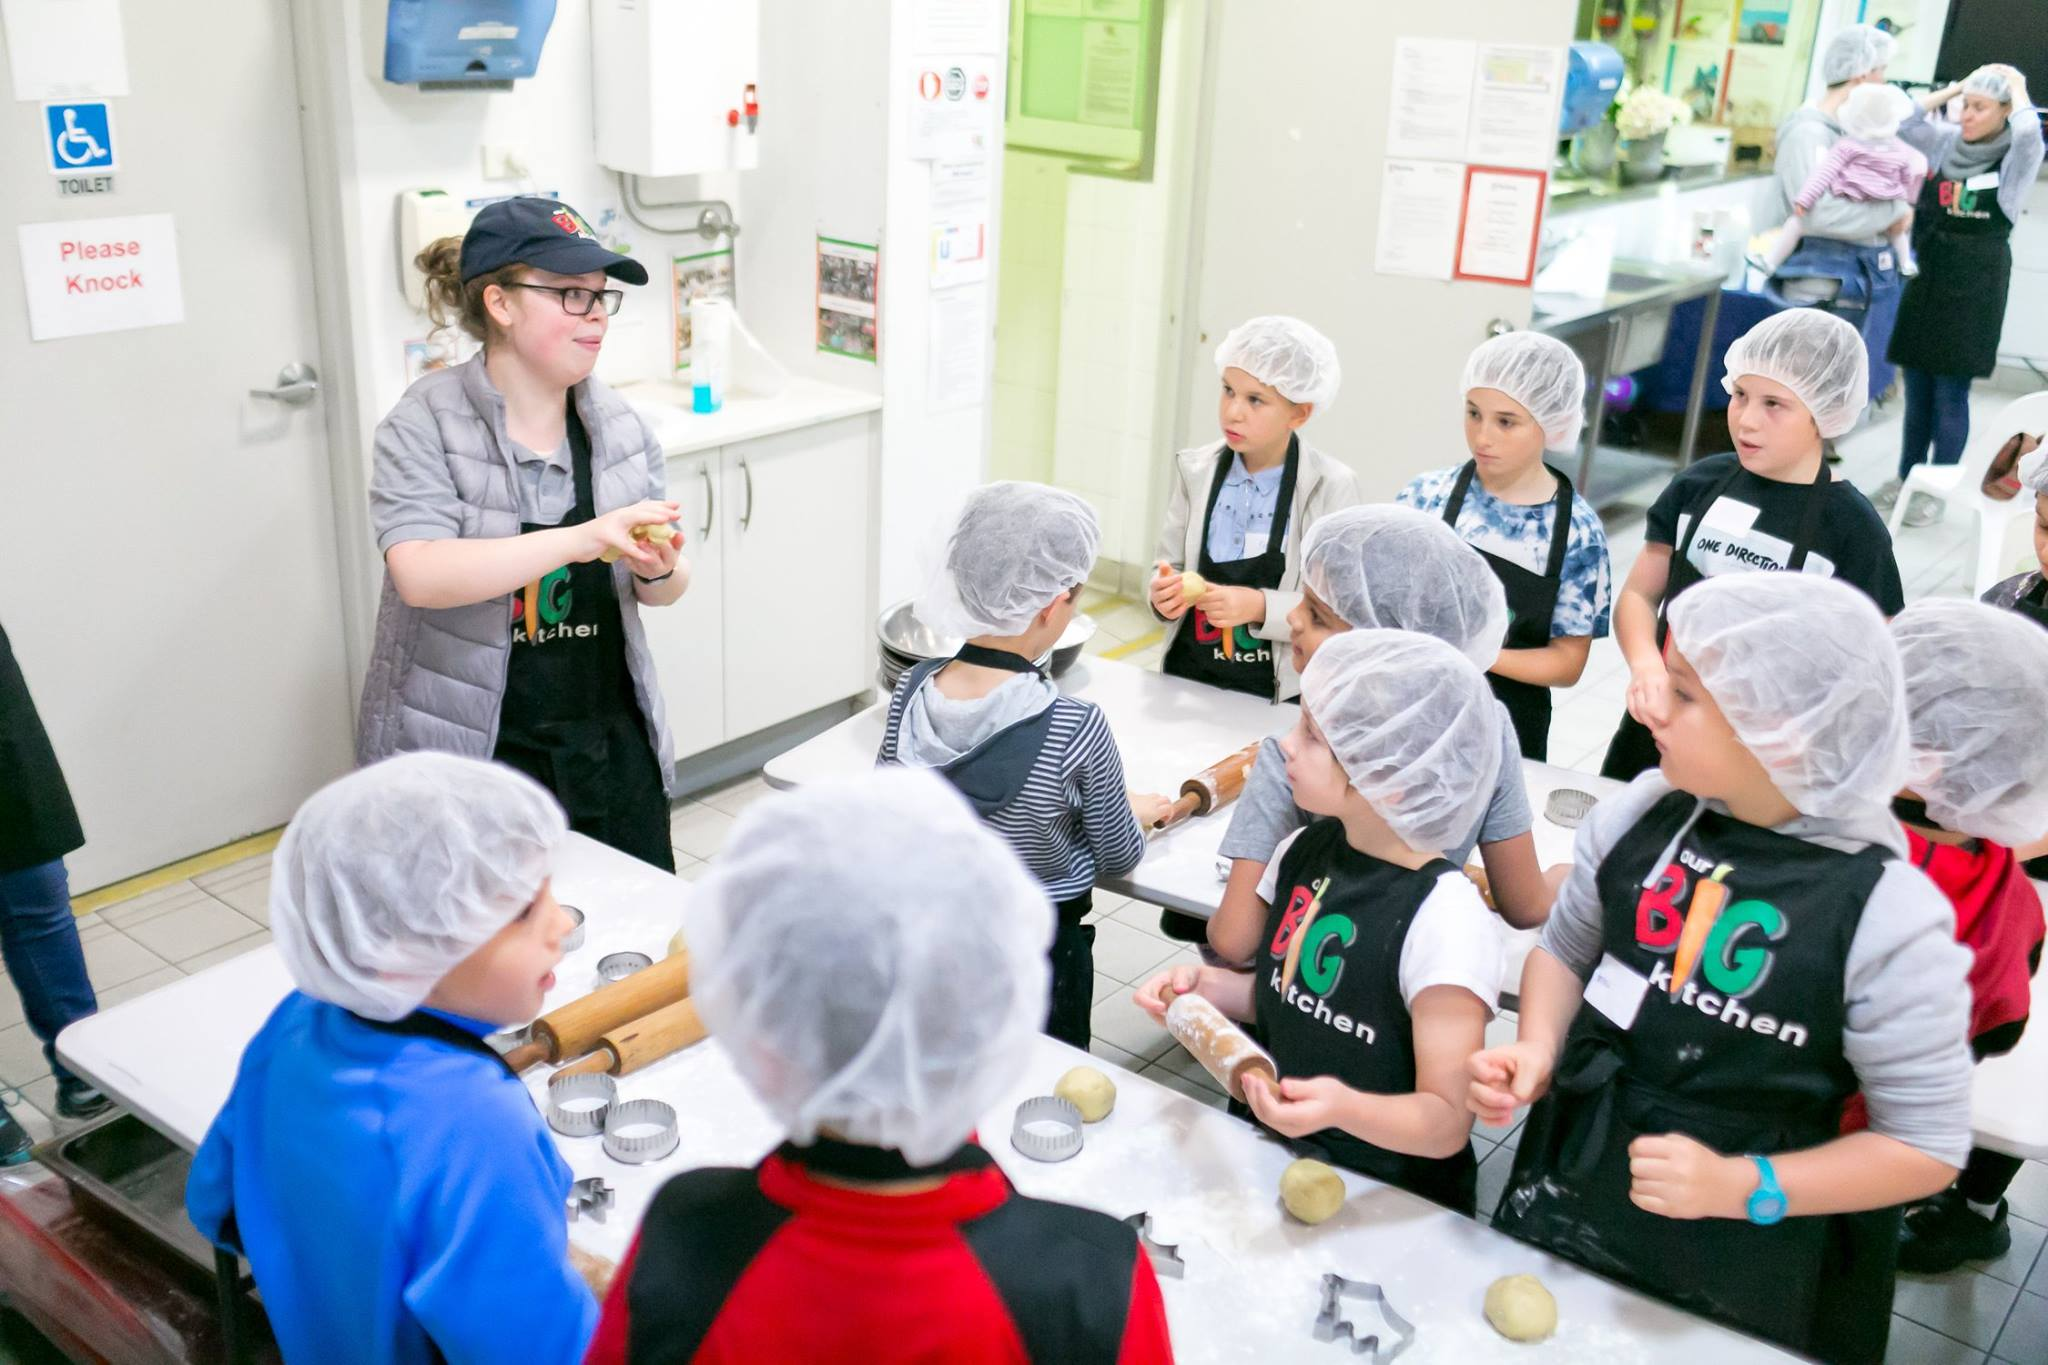 Sandy from Our Big Kitchen teaching all the kids how to make cookies and bread rolls